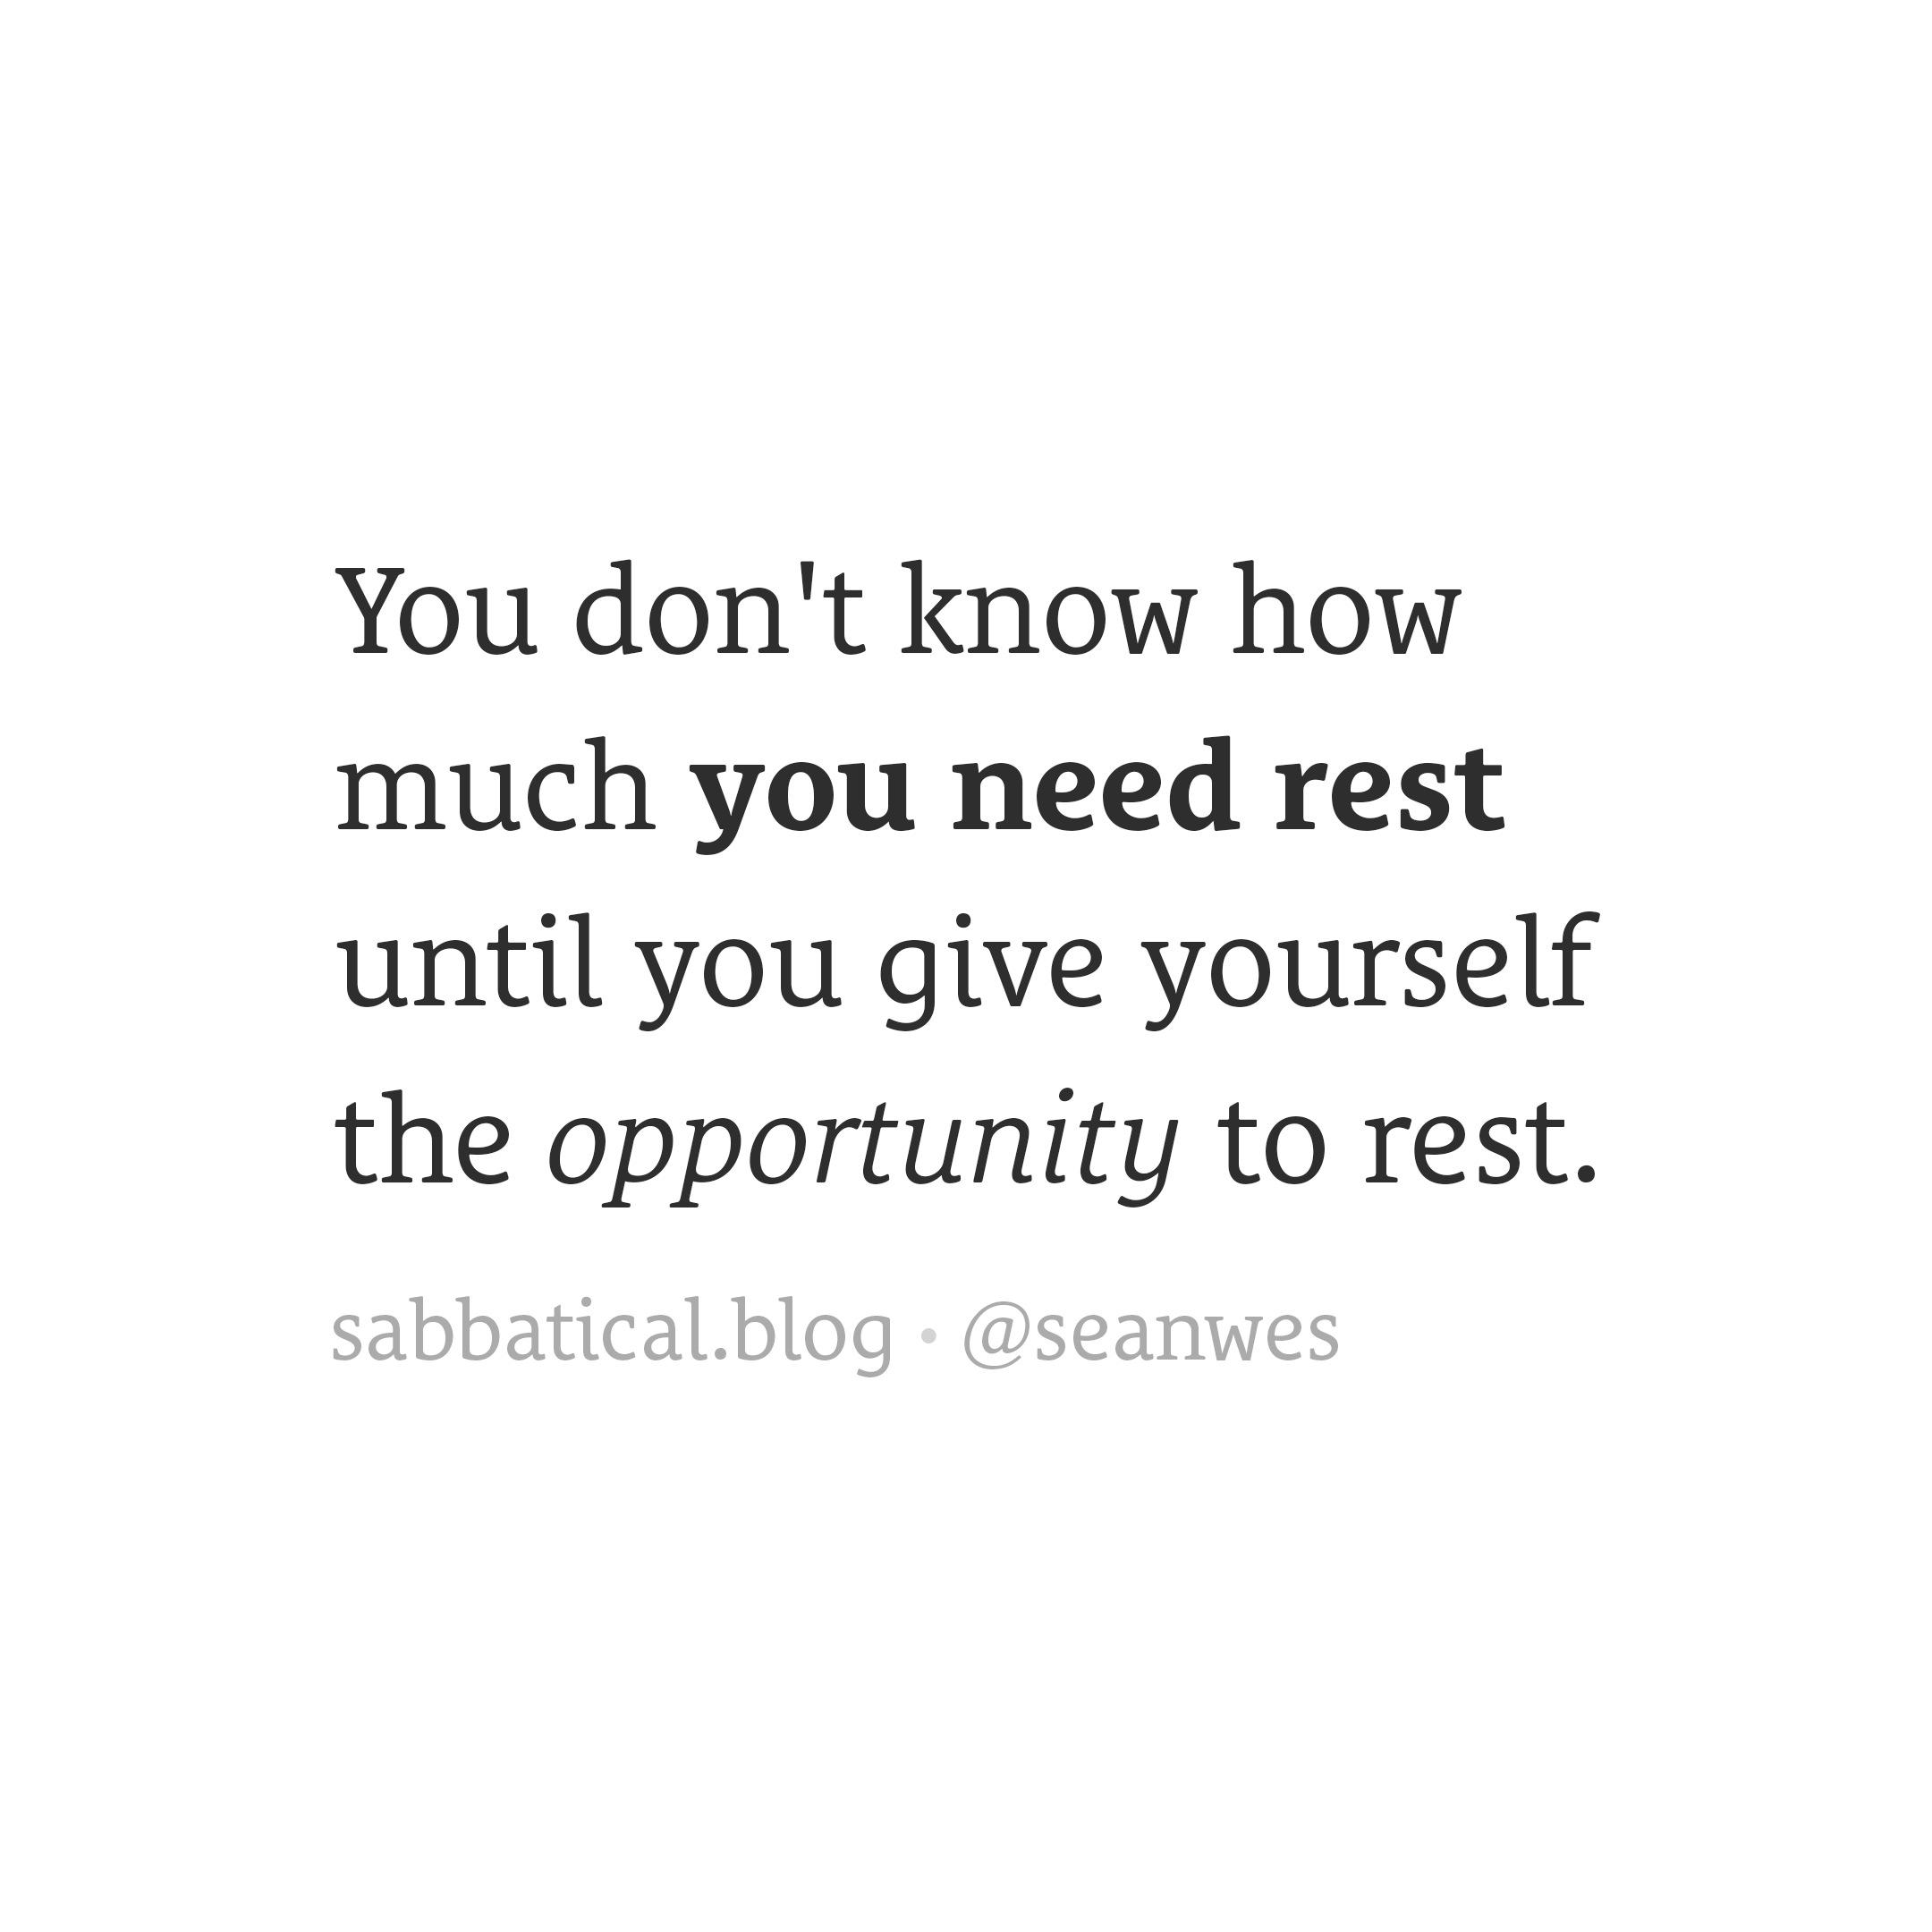 You don't know how much you need rest.